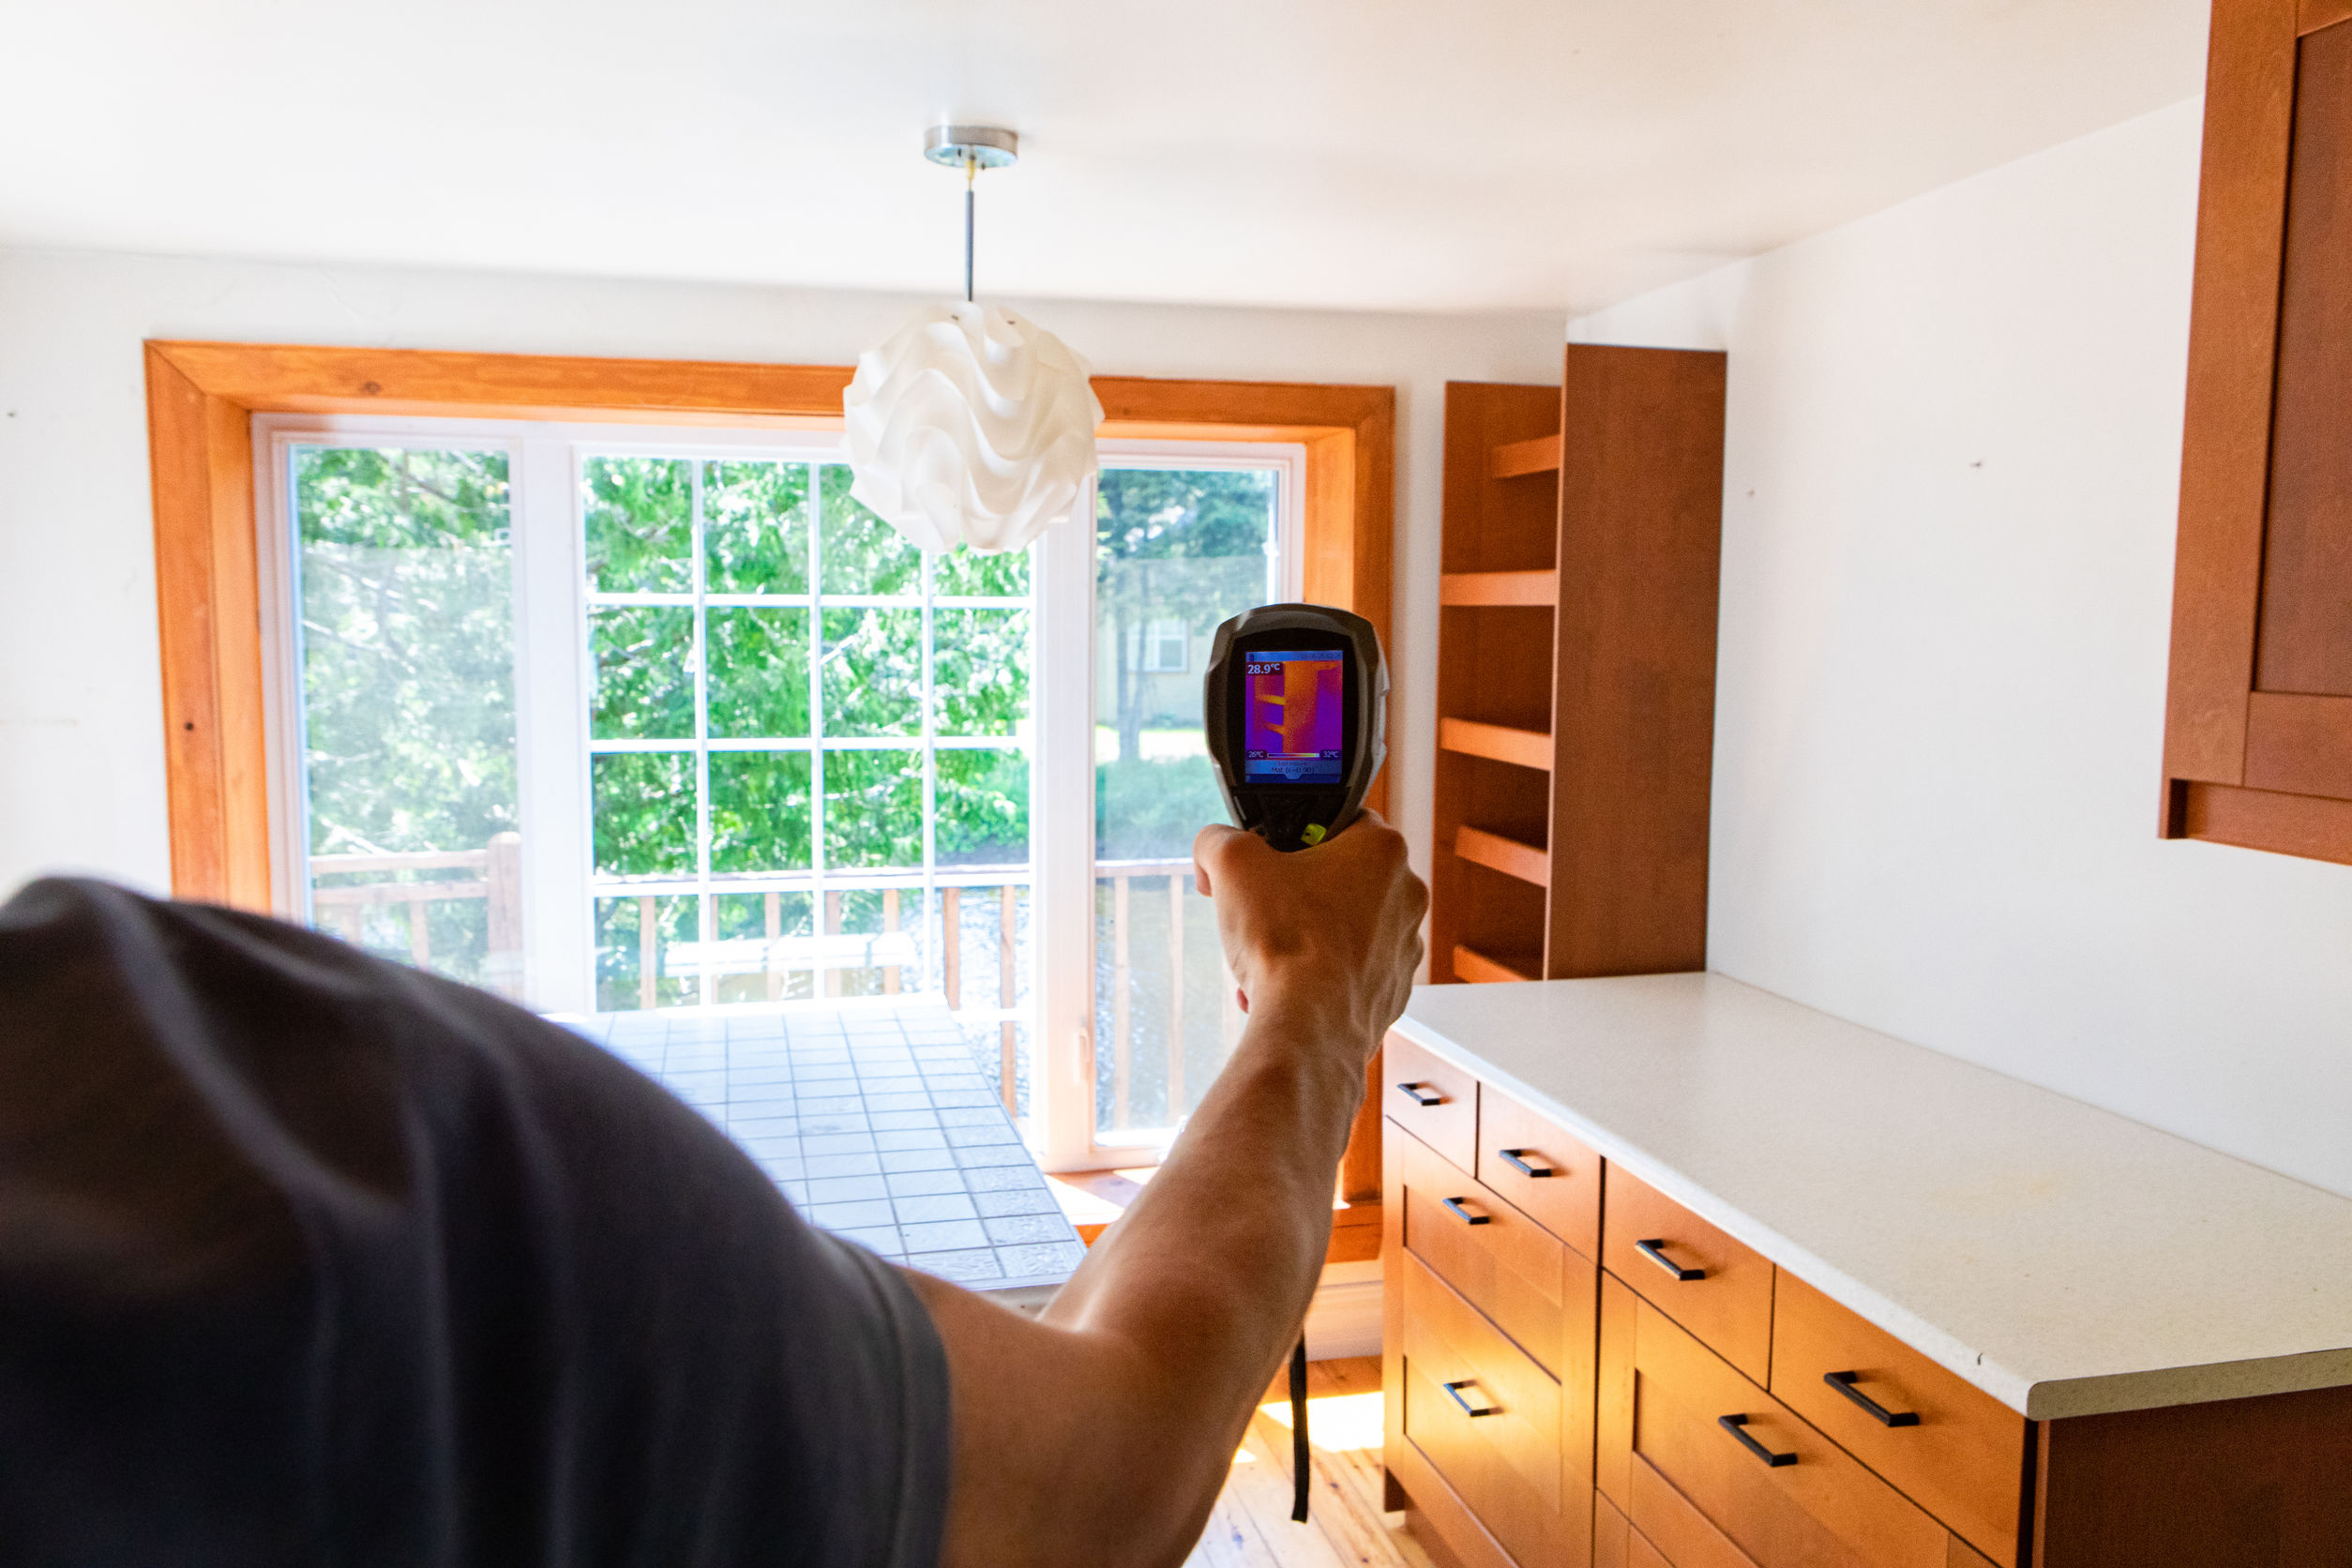 Improving Indoor Air Quality in Your Home